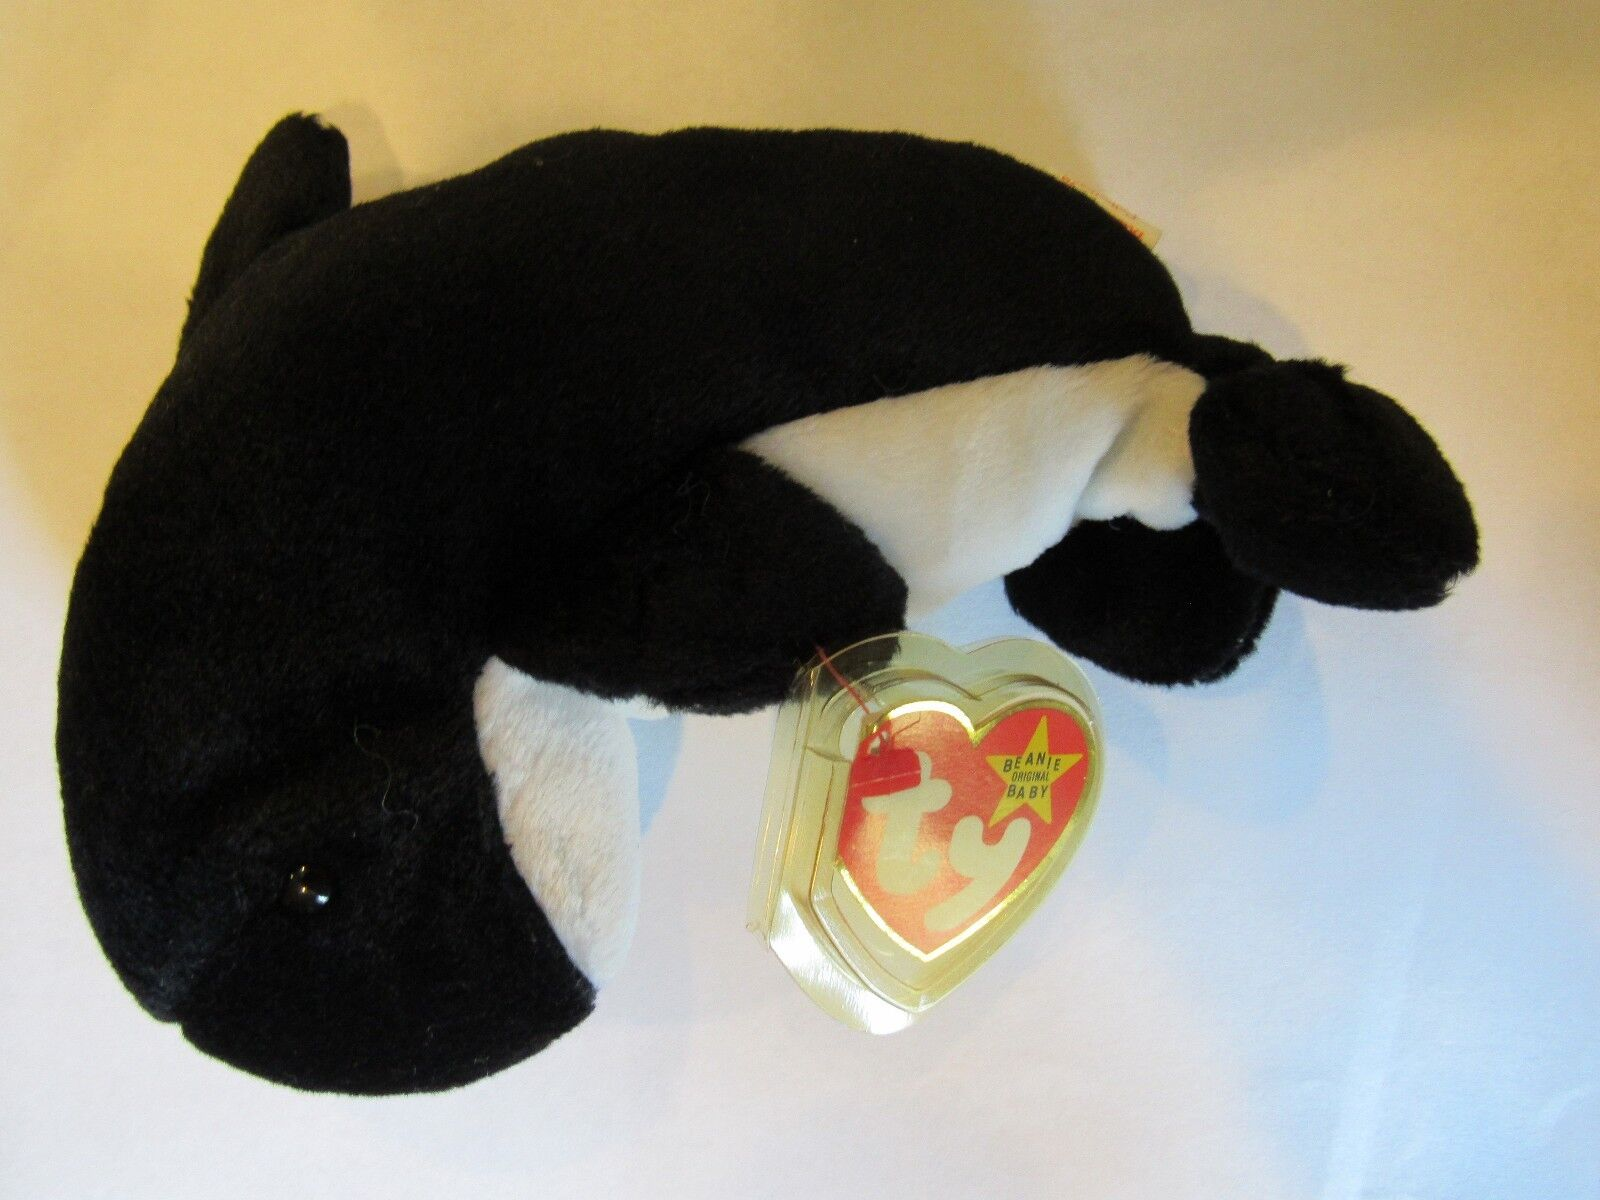 MINT Rare Retired TY Beanie Babies WAVES with MANY Errors PVC Pellets